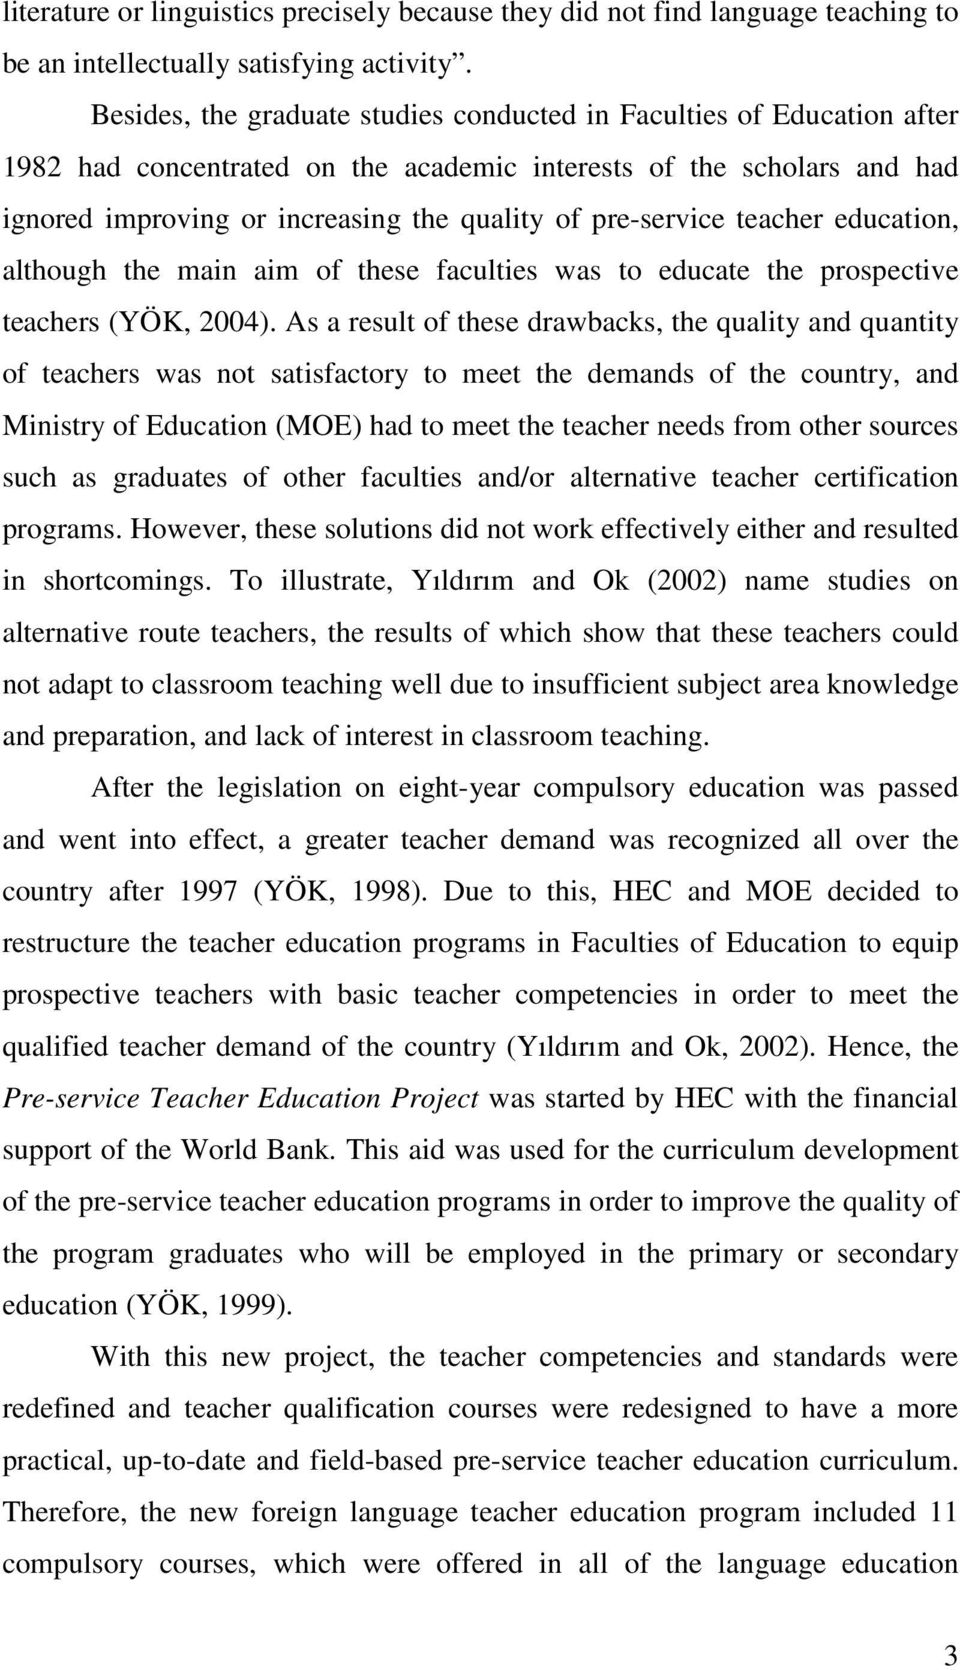 pre-service teacher education, although the main aim of these faculties was to educate the prospective teachers (YÖK, 2004).